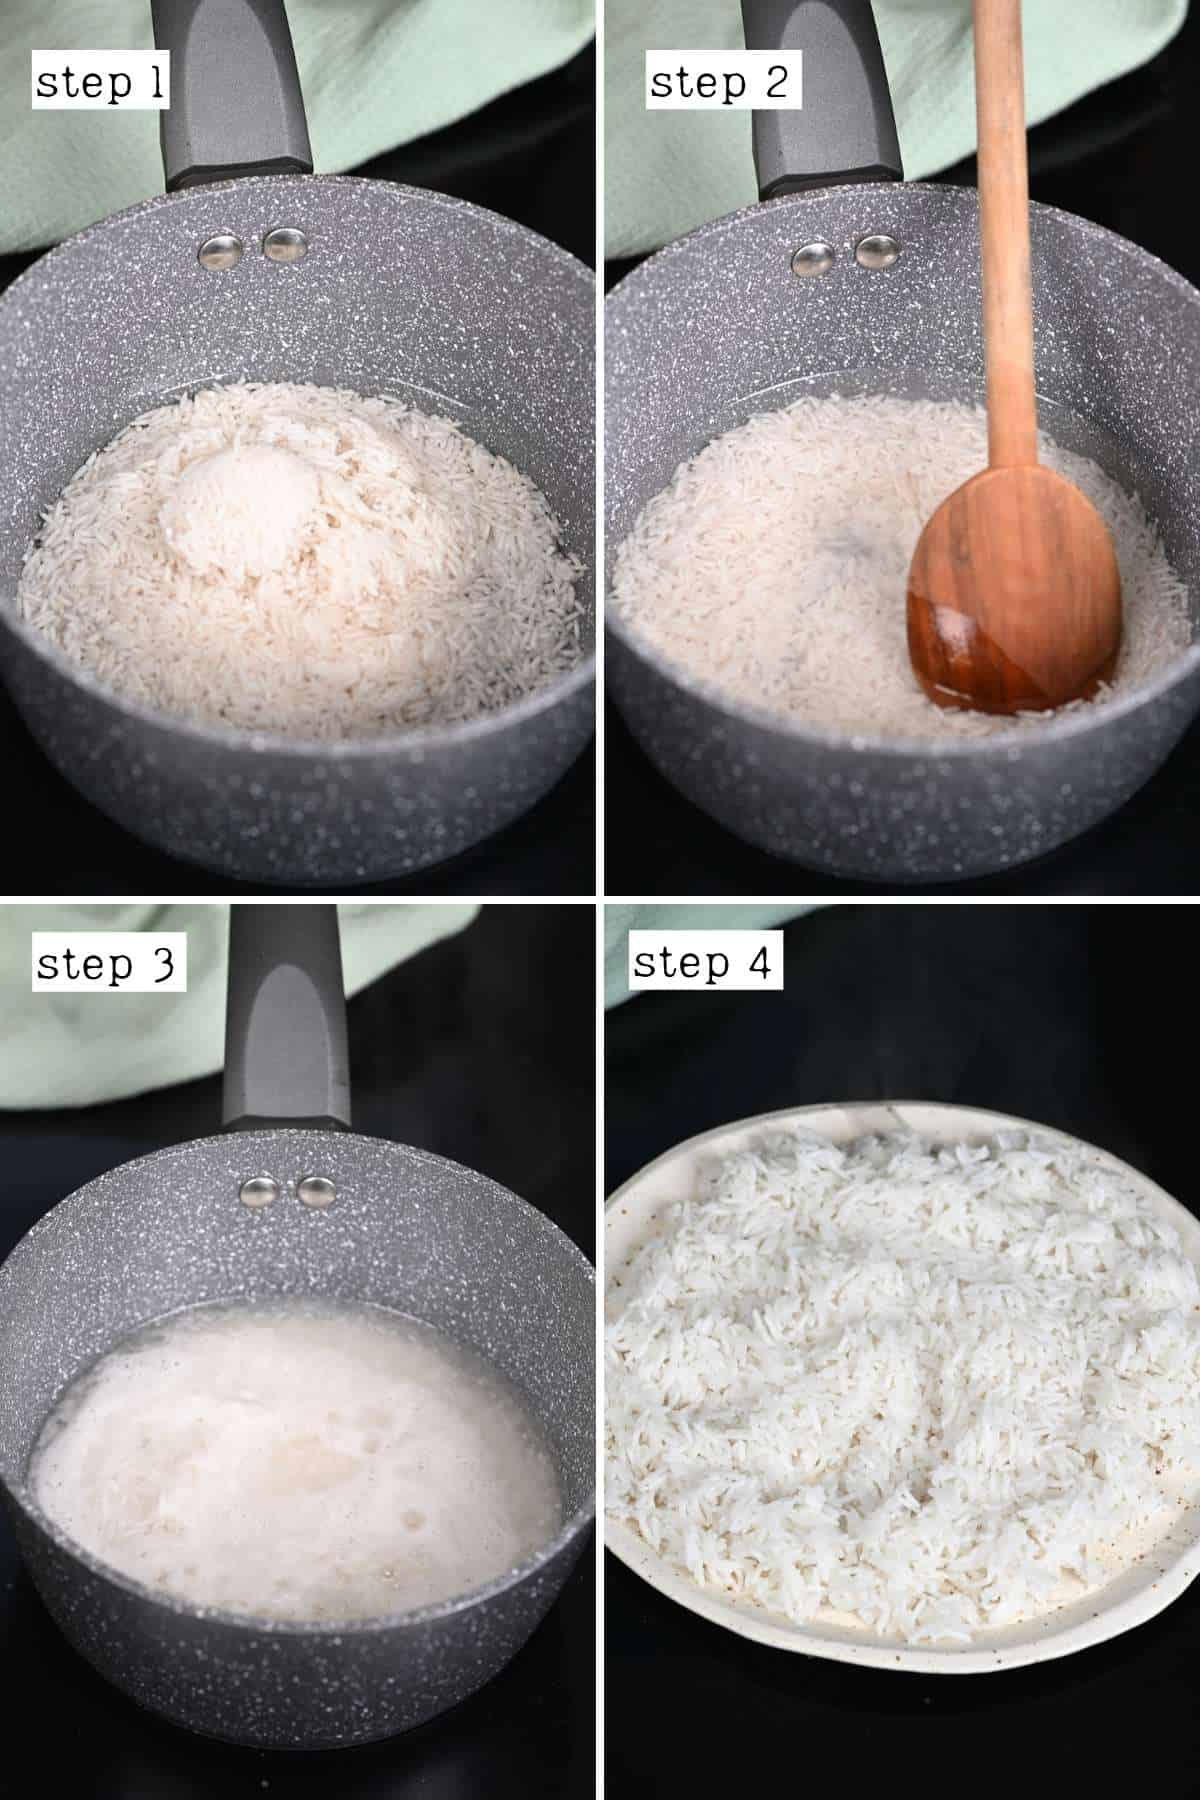 Steps for cooking rice